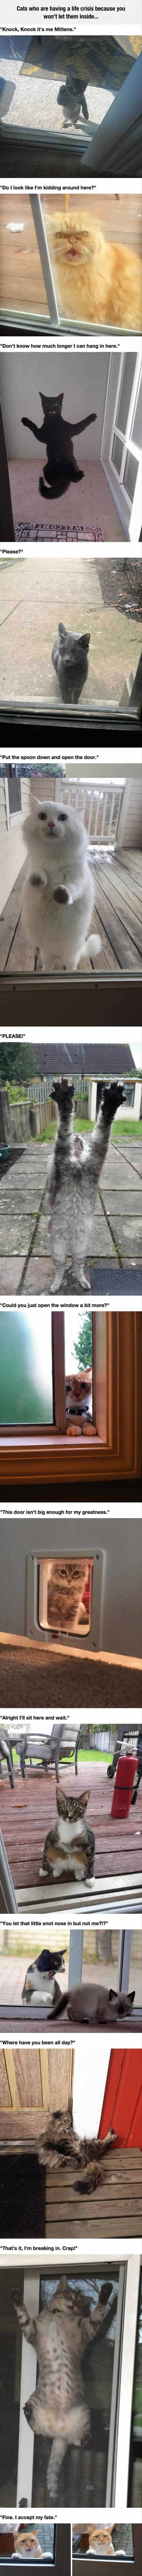 Cats Who Are Having A Life Crisis Because You Won't Let Them Inside cute animals cat cats adorable animal kittens pets lol kitten humor funny pictures funny animals funny cats